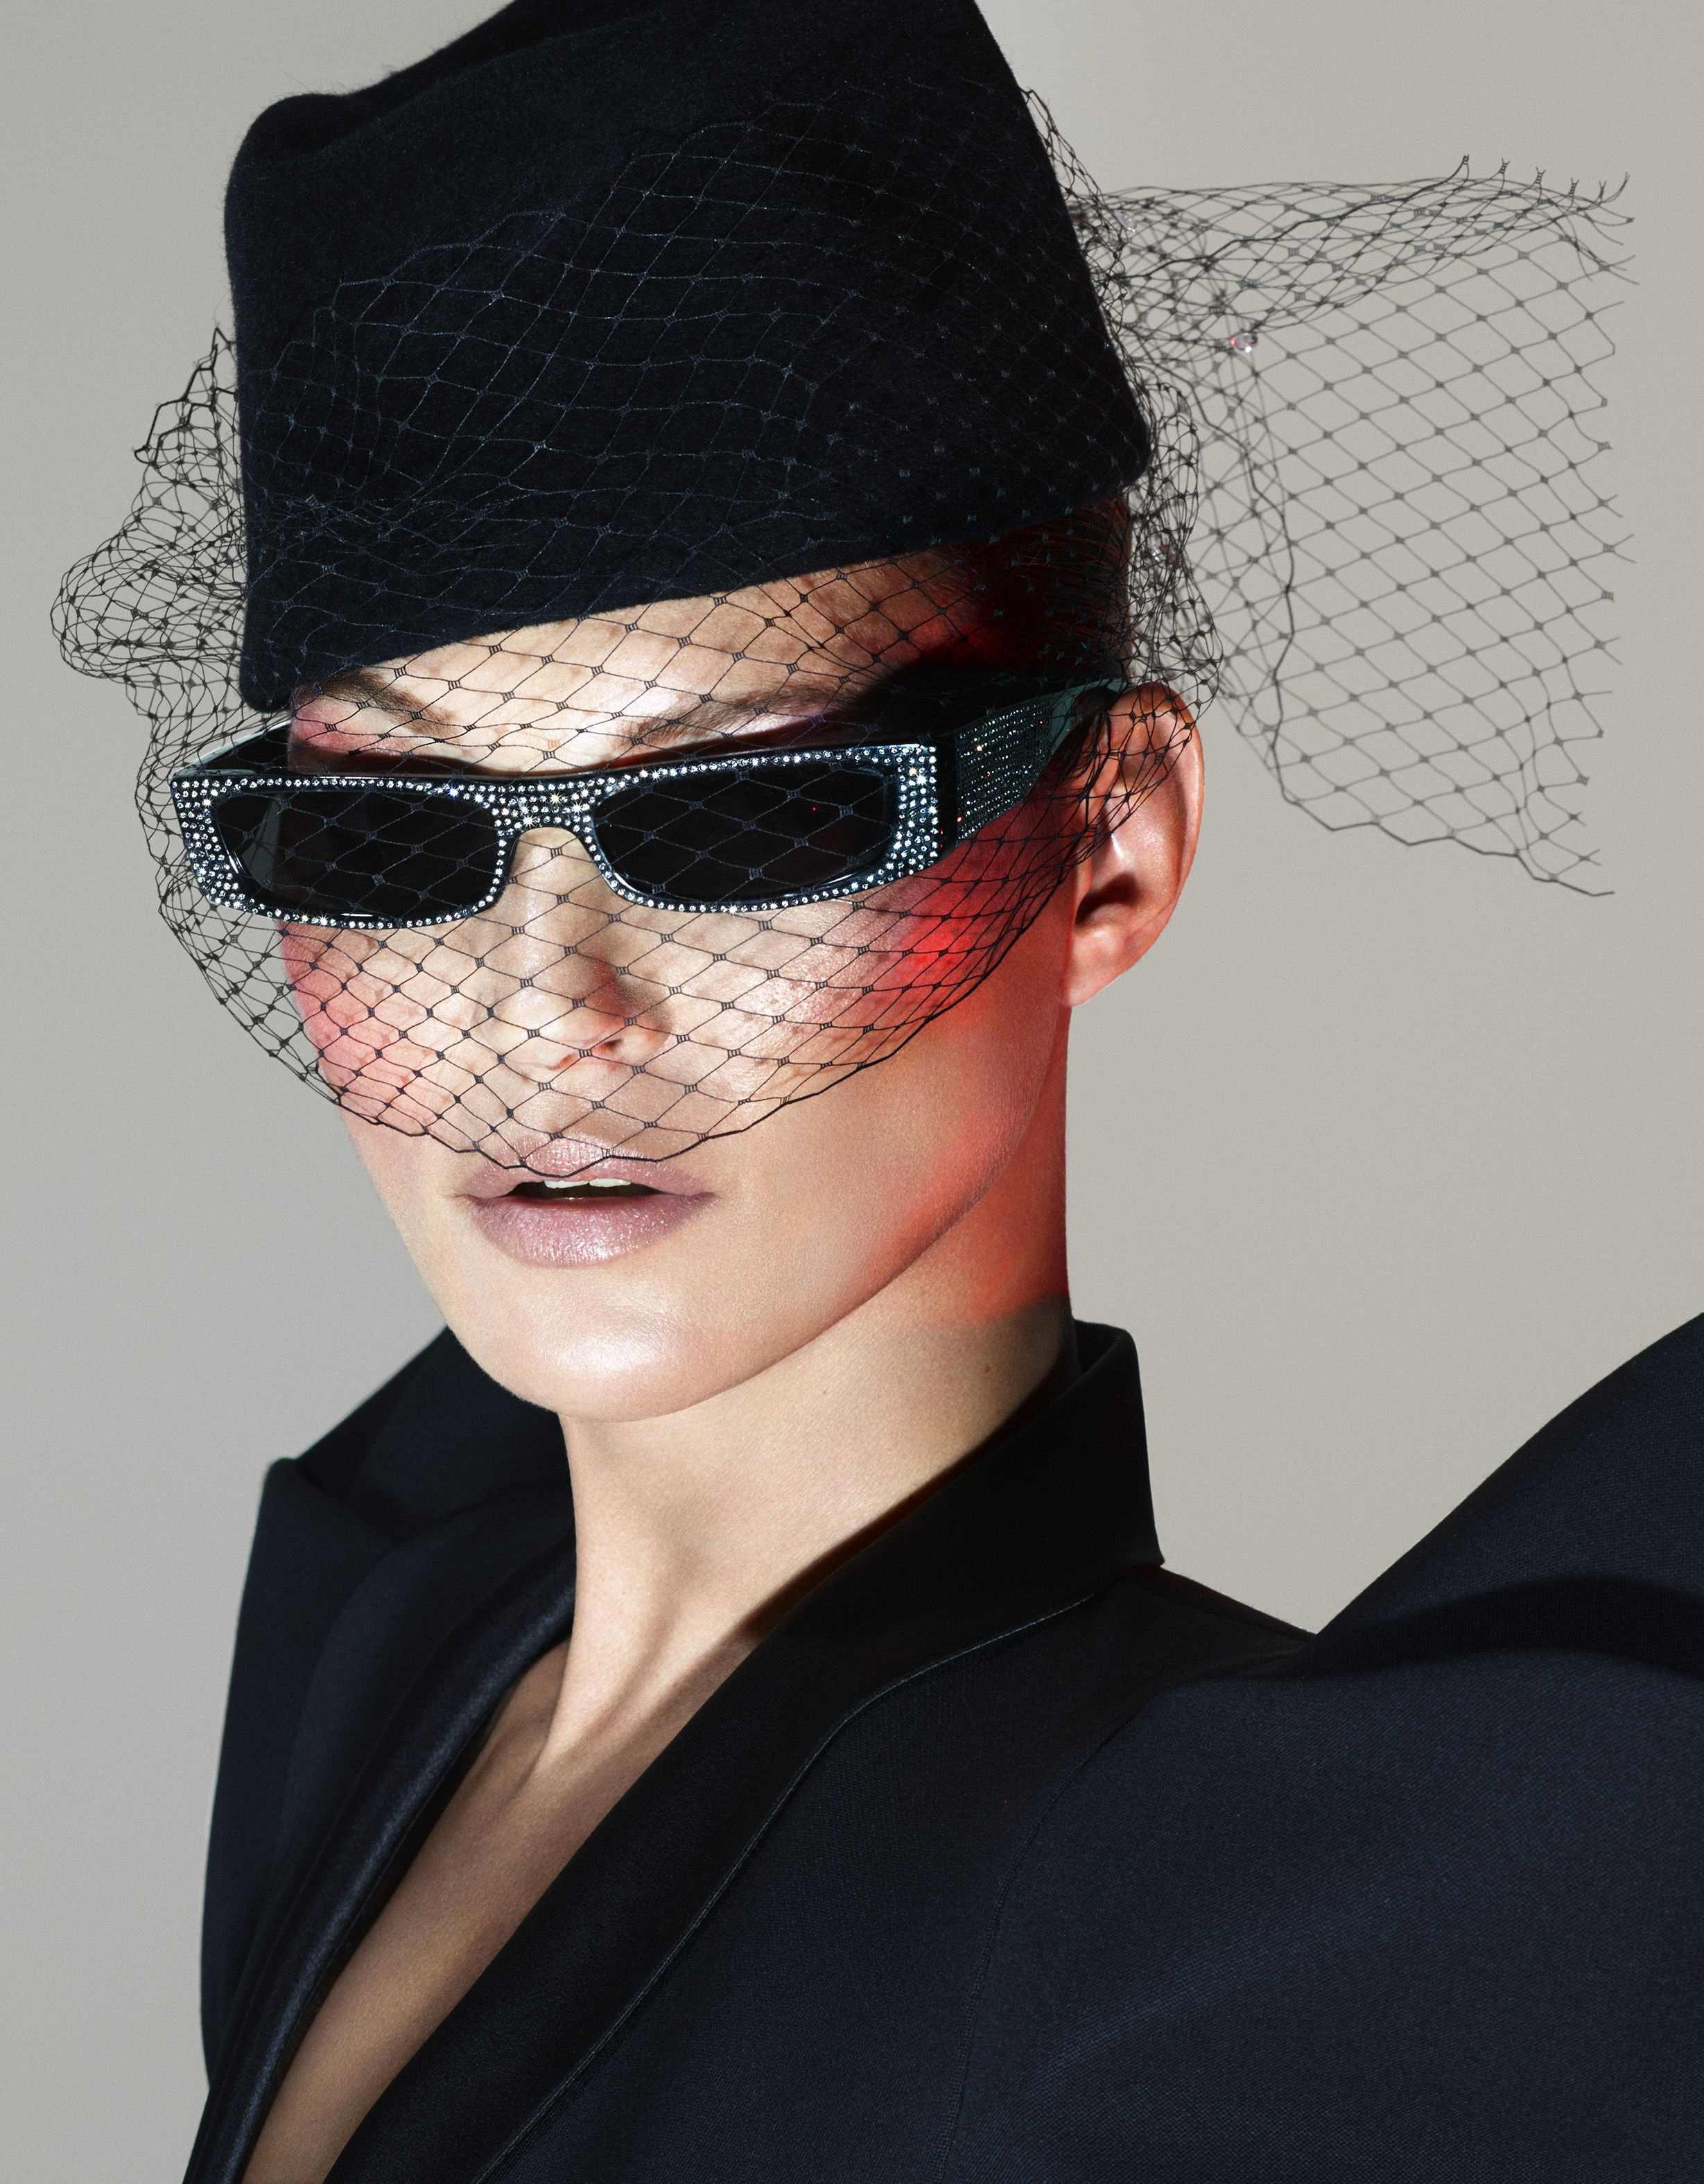 dde9ccb8 Kate Moss Stuns in Alain Mikli and Alexandre Vauthier's New Eyewear Collab